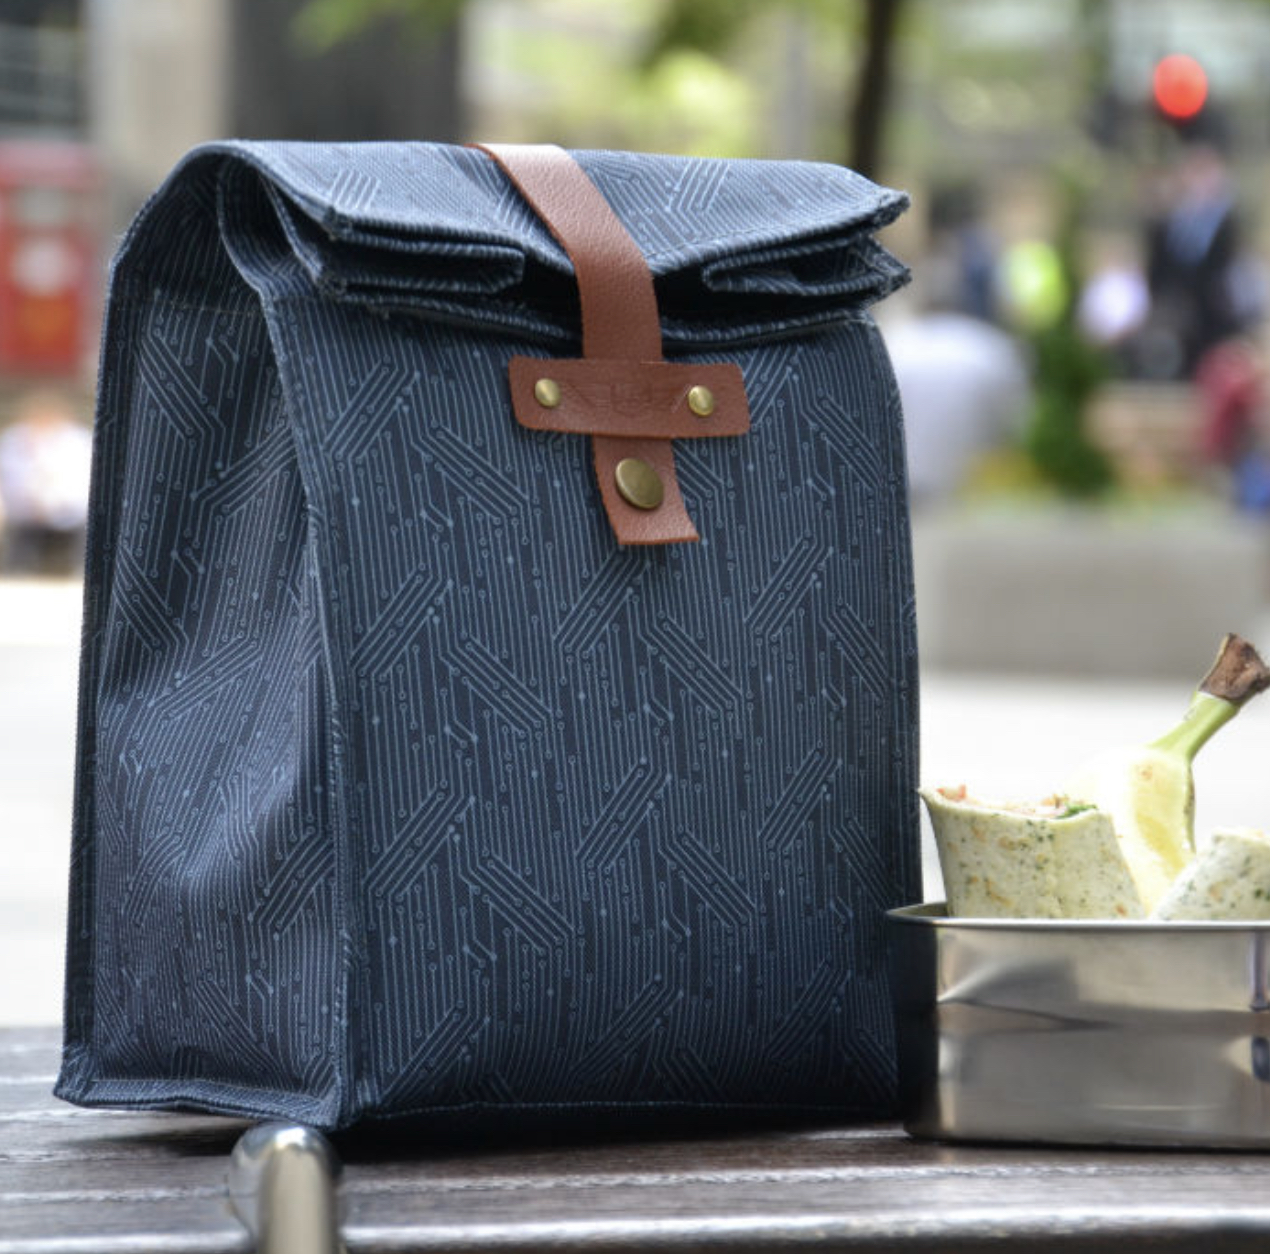 CIRCUIT MEN'S INSULATED LUNCH BAG. BEAU & ELLIOT LUNCH BAG